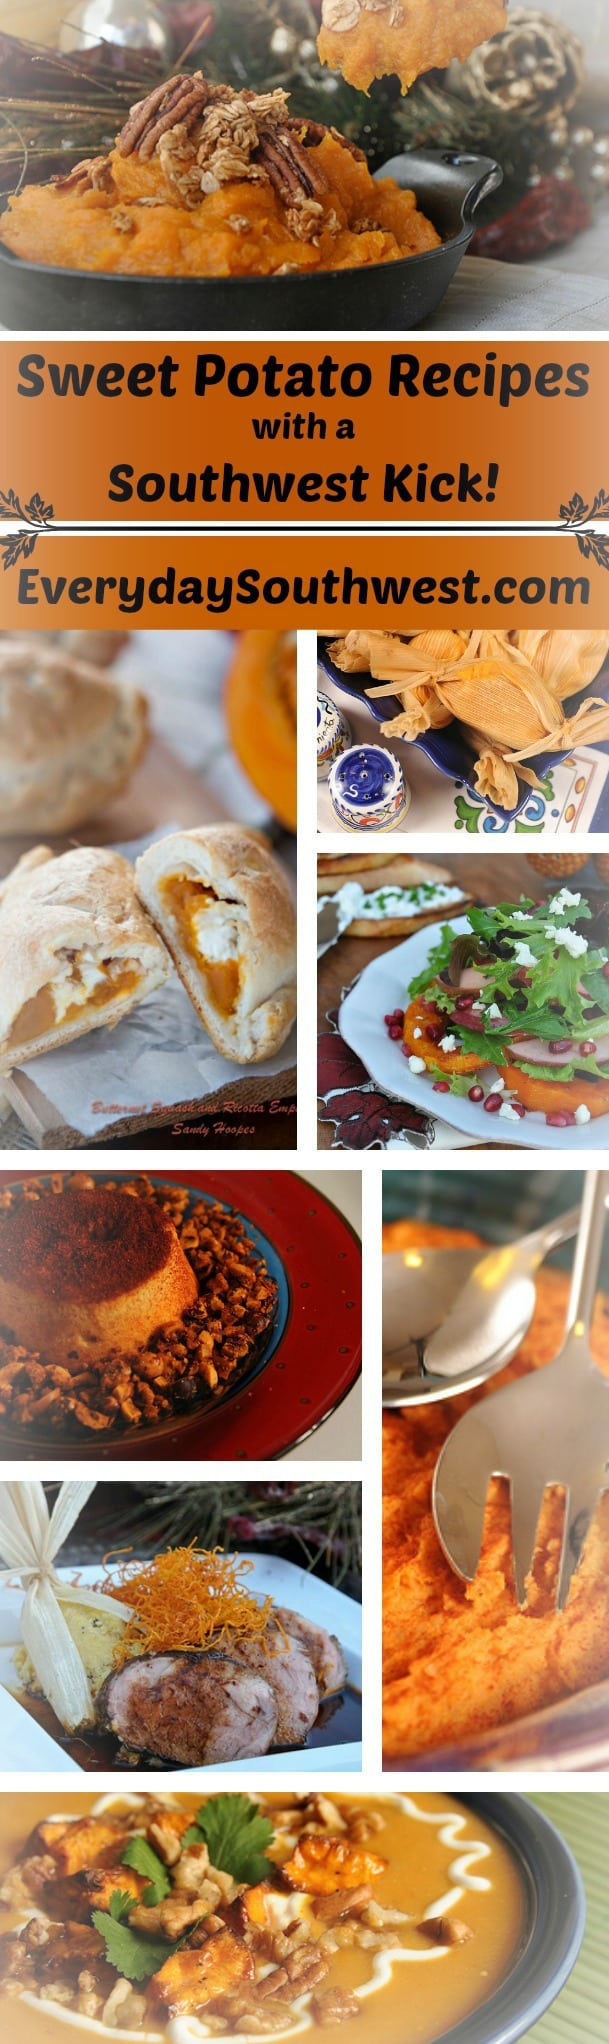 10 Southwest Sweet Potato Recipes